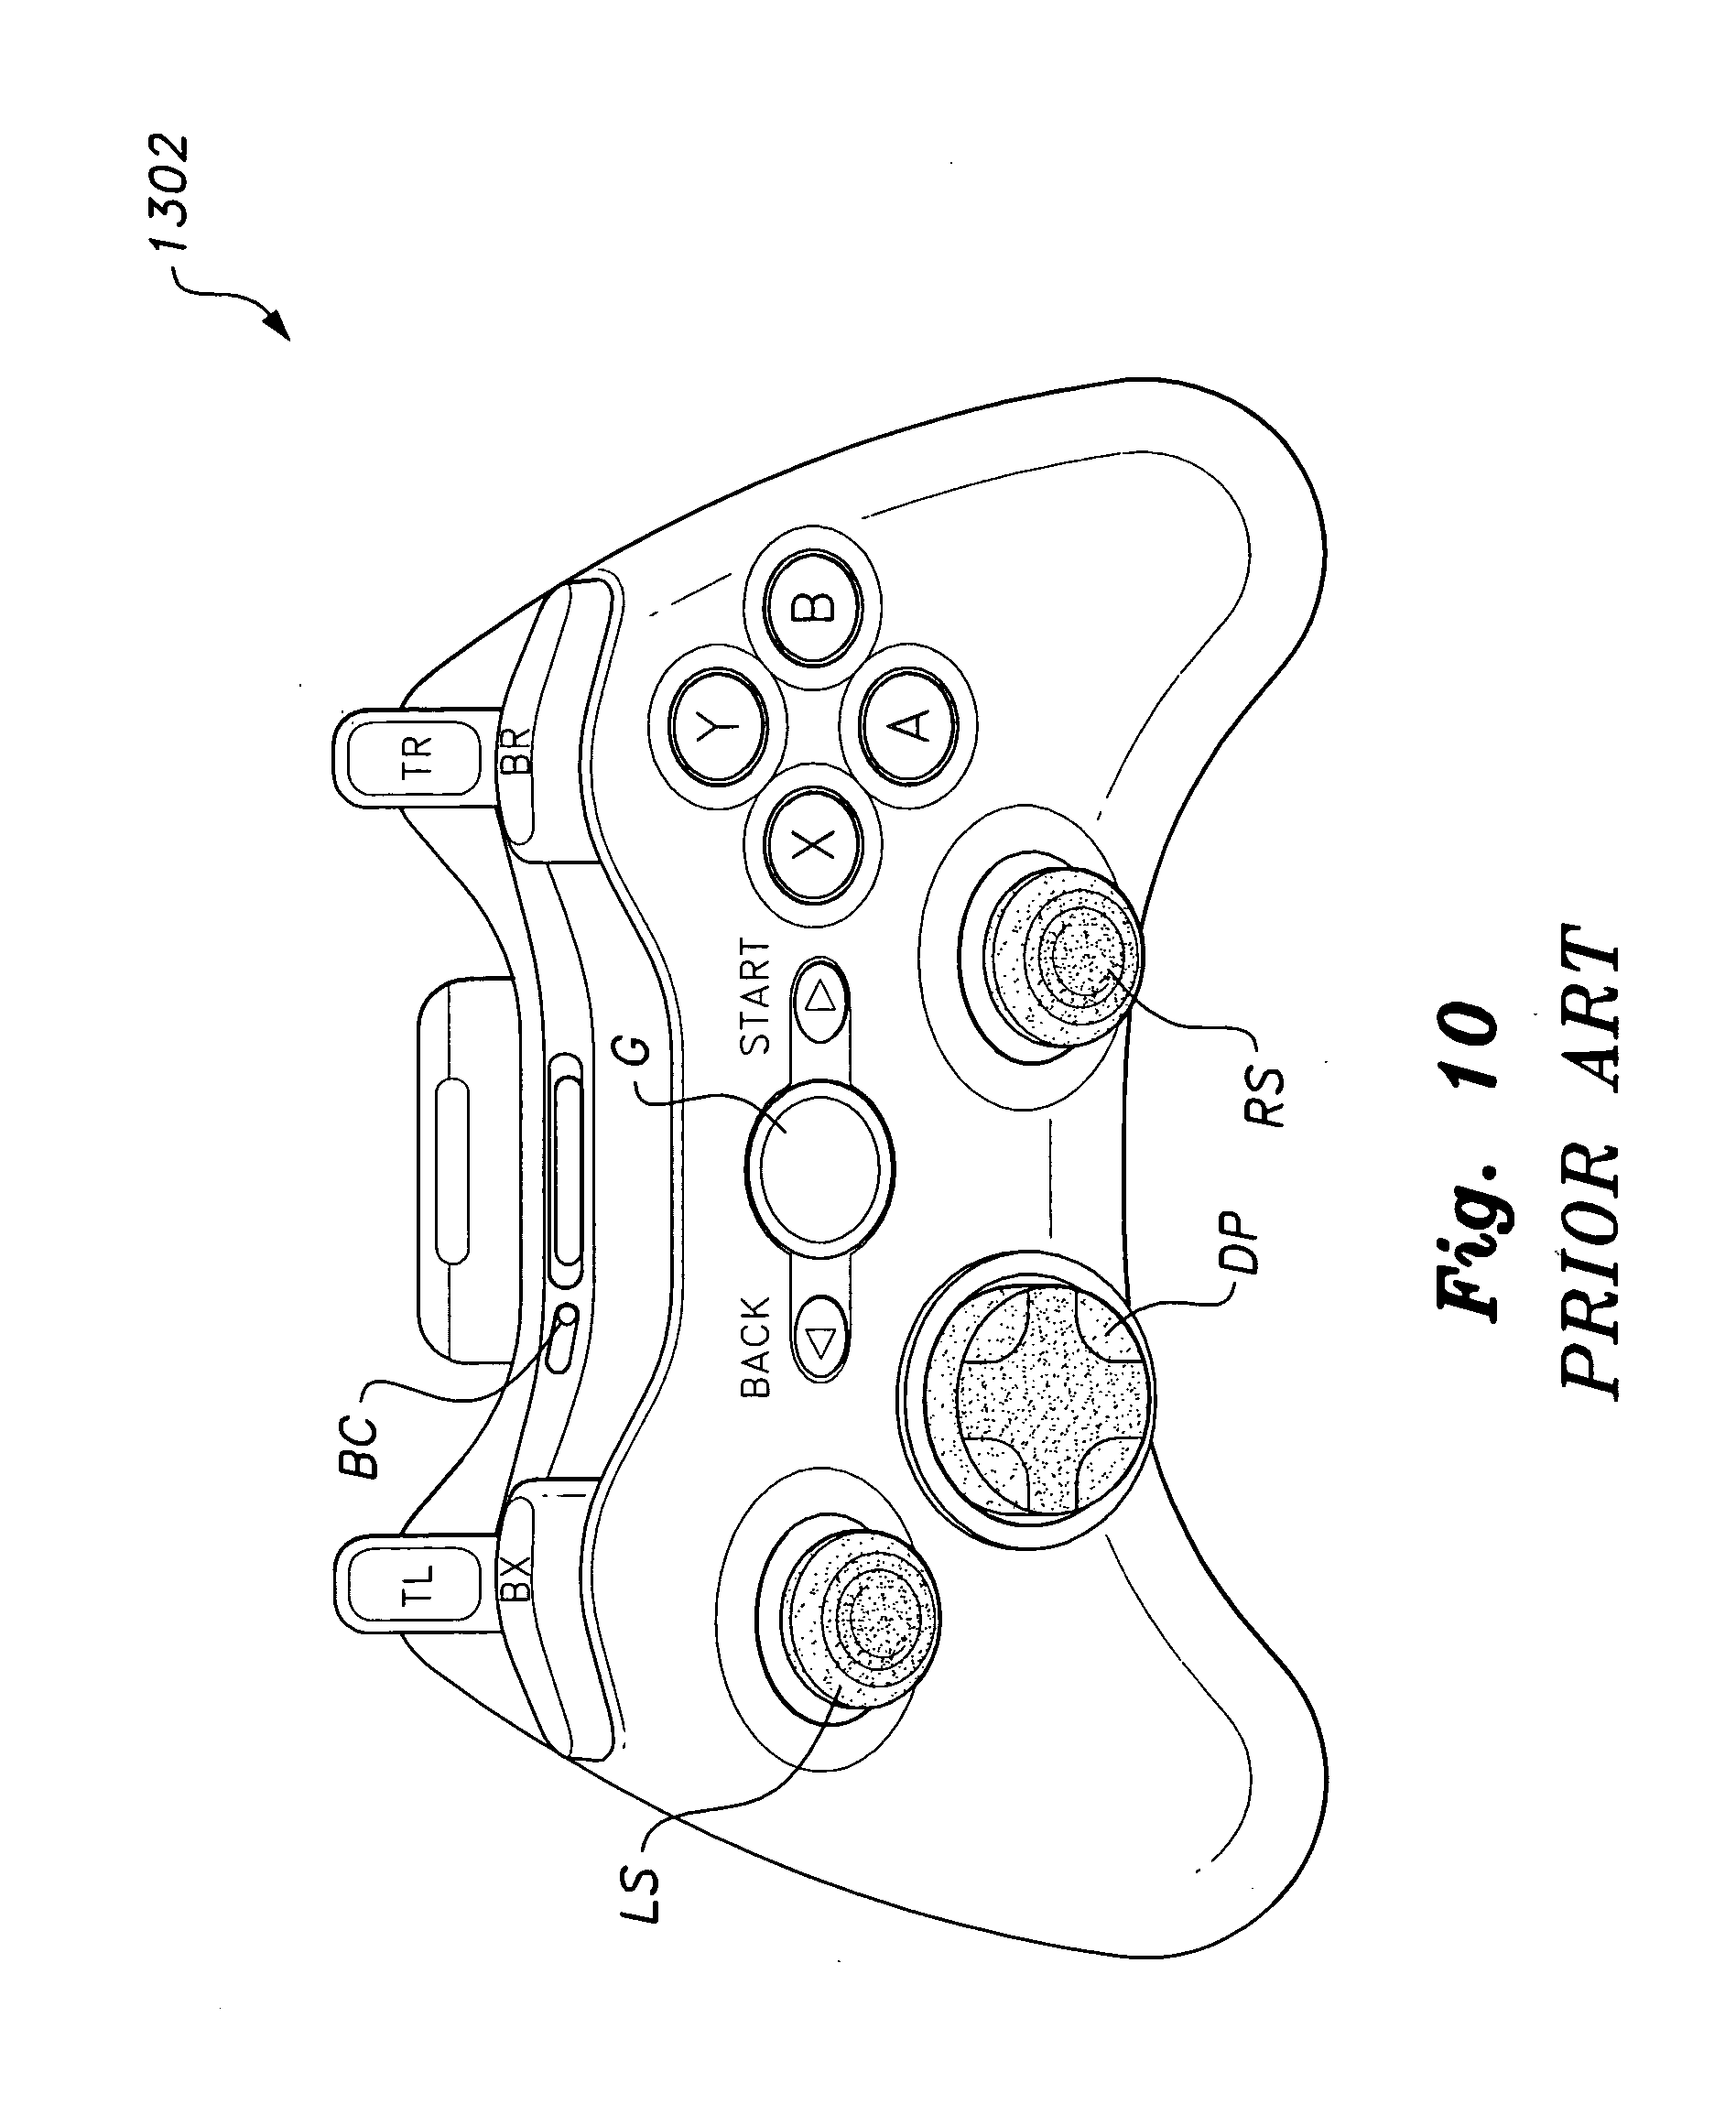 Photo collection xbox controller diagram blank images of xbox controller diagram blank sc ccuart Image collections